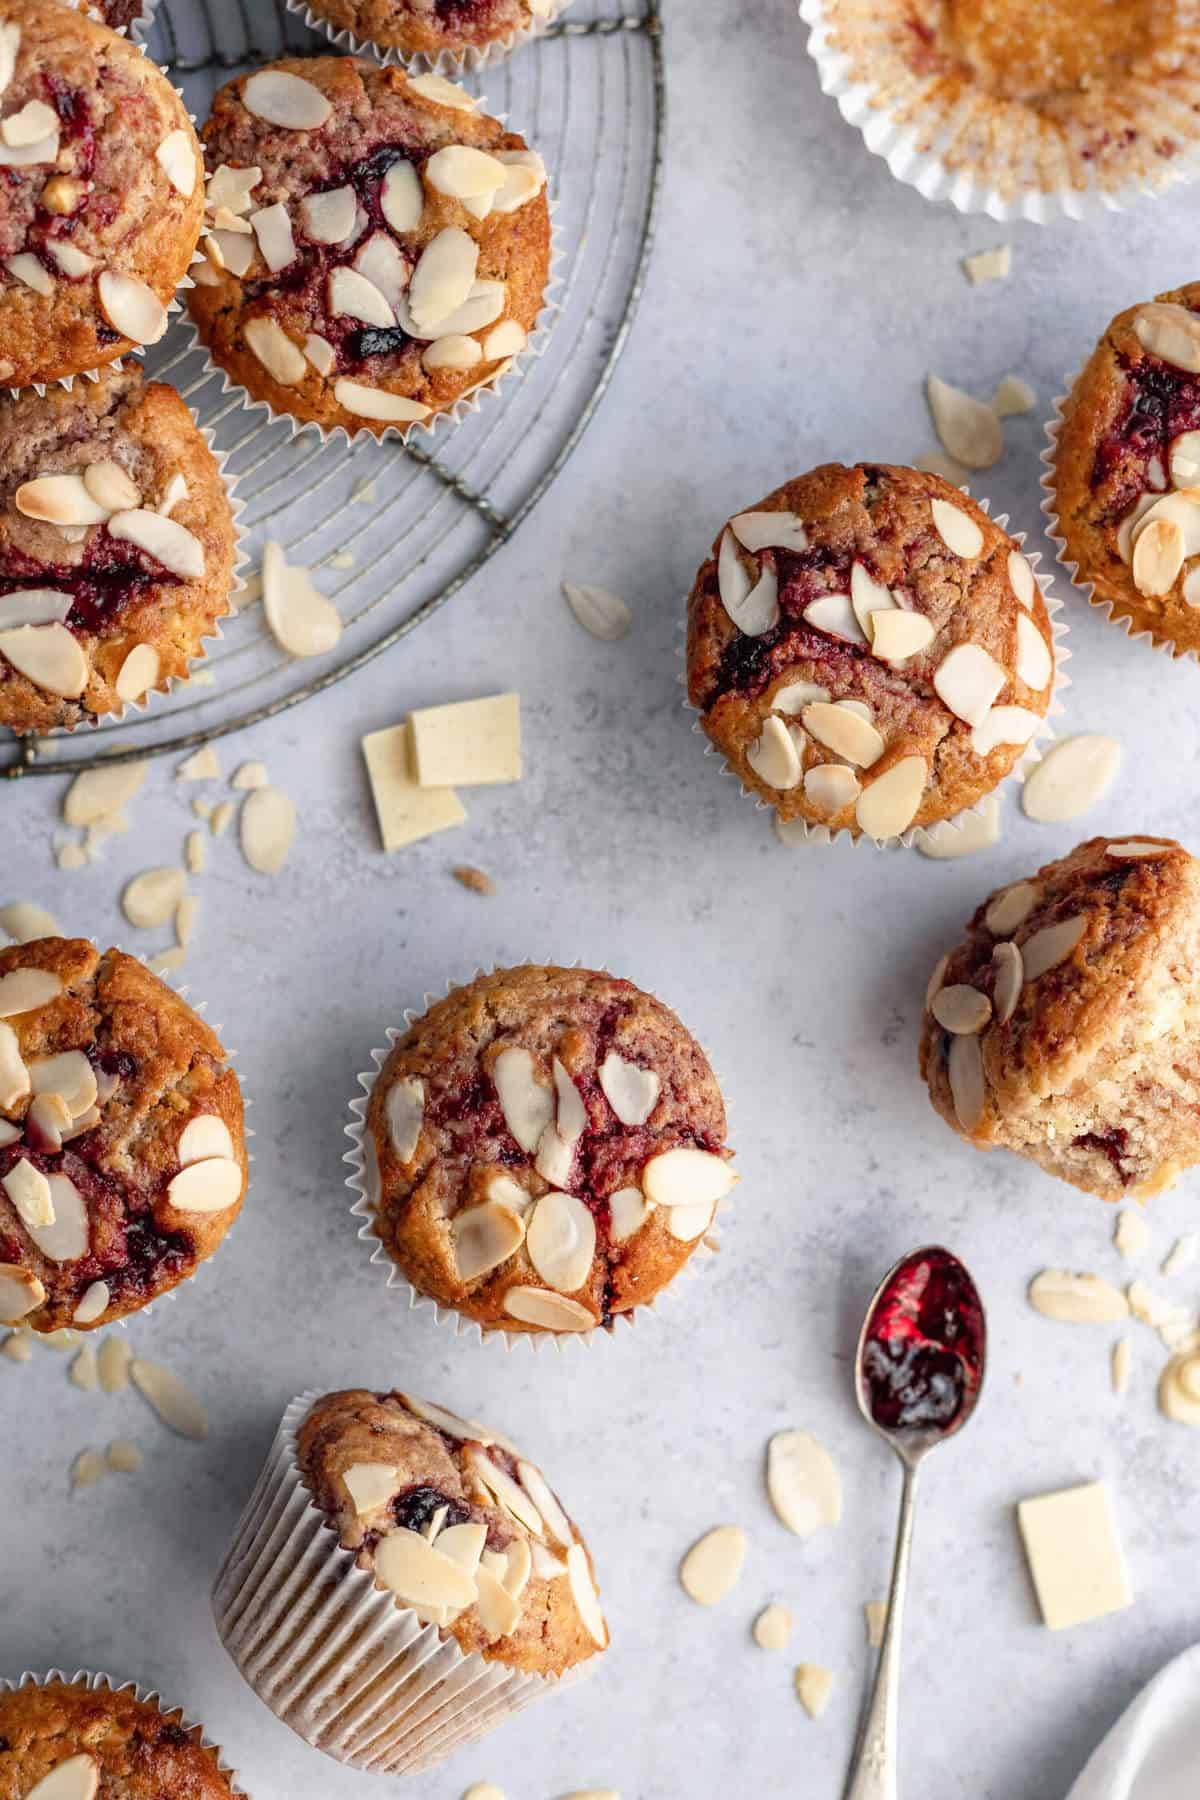 image shows a cooling rack, several muffins with flaked almonds on top and some almonds and white chocolate scattered around